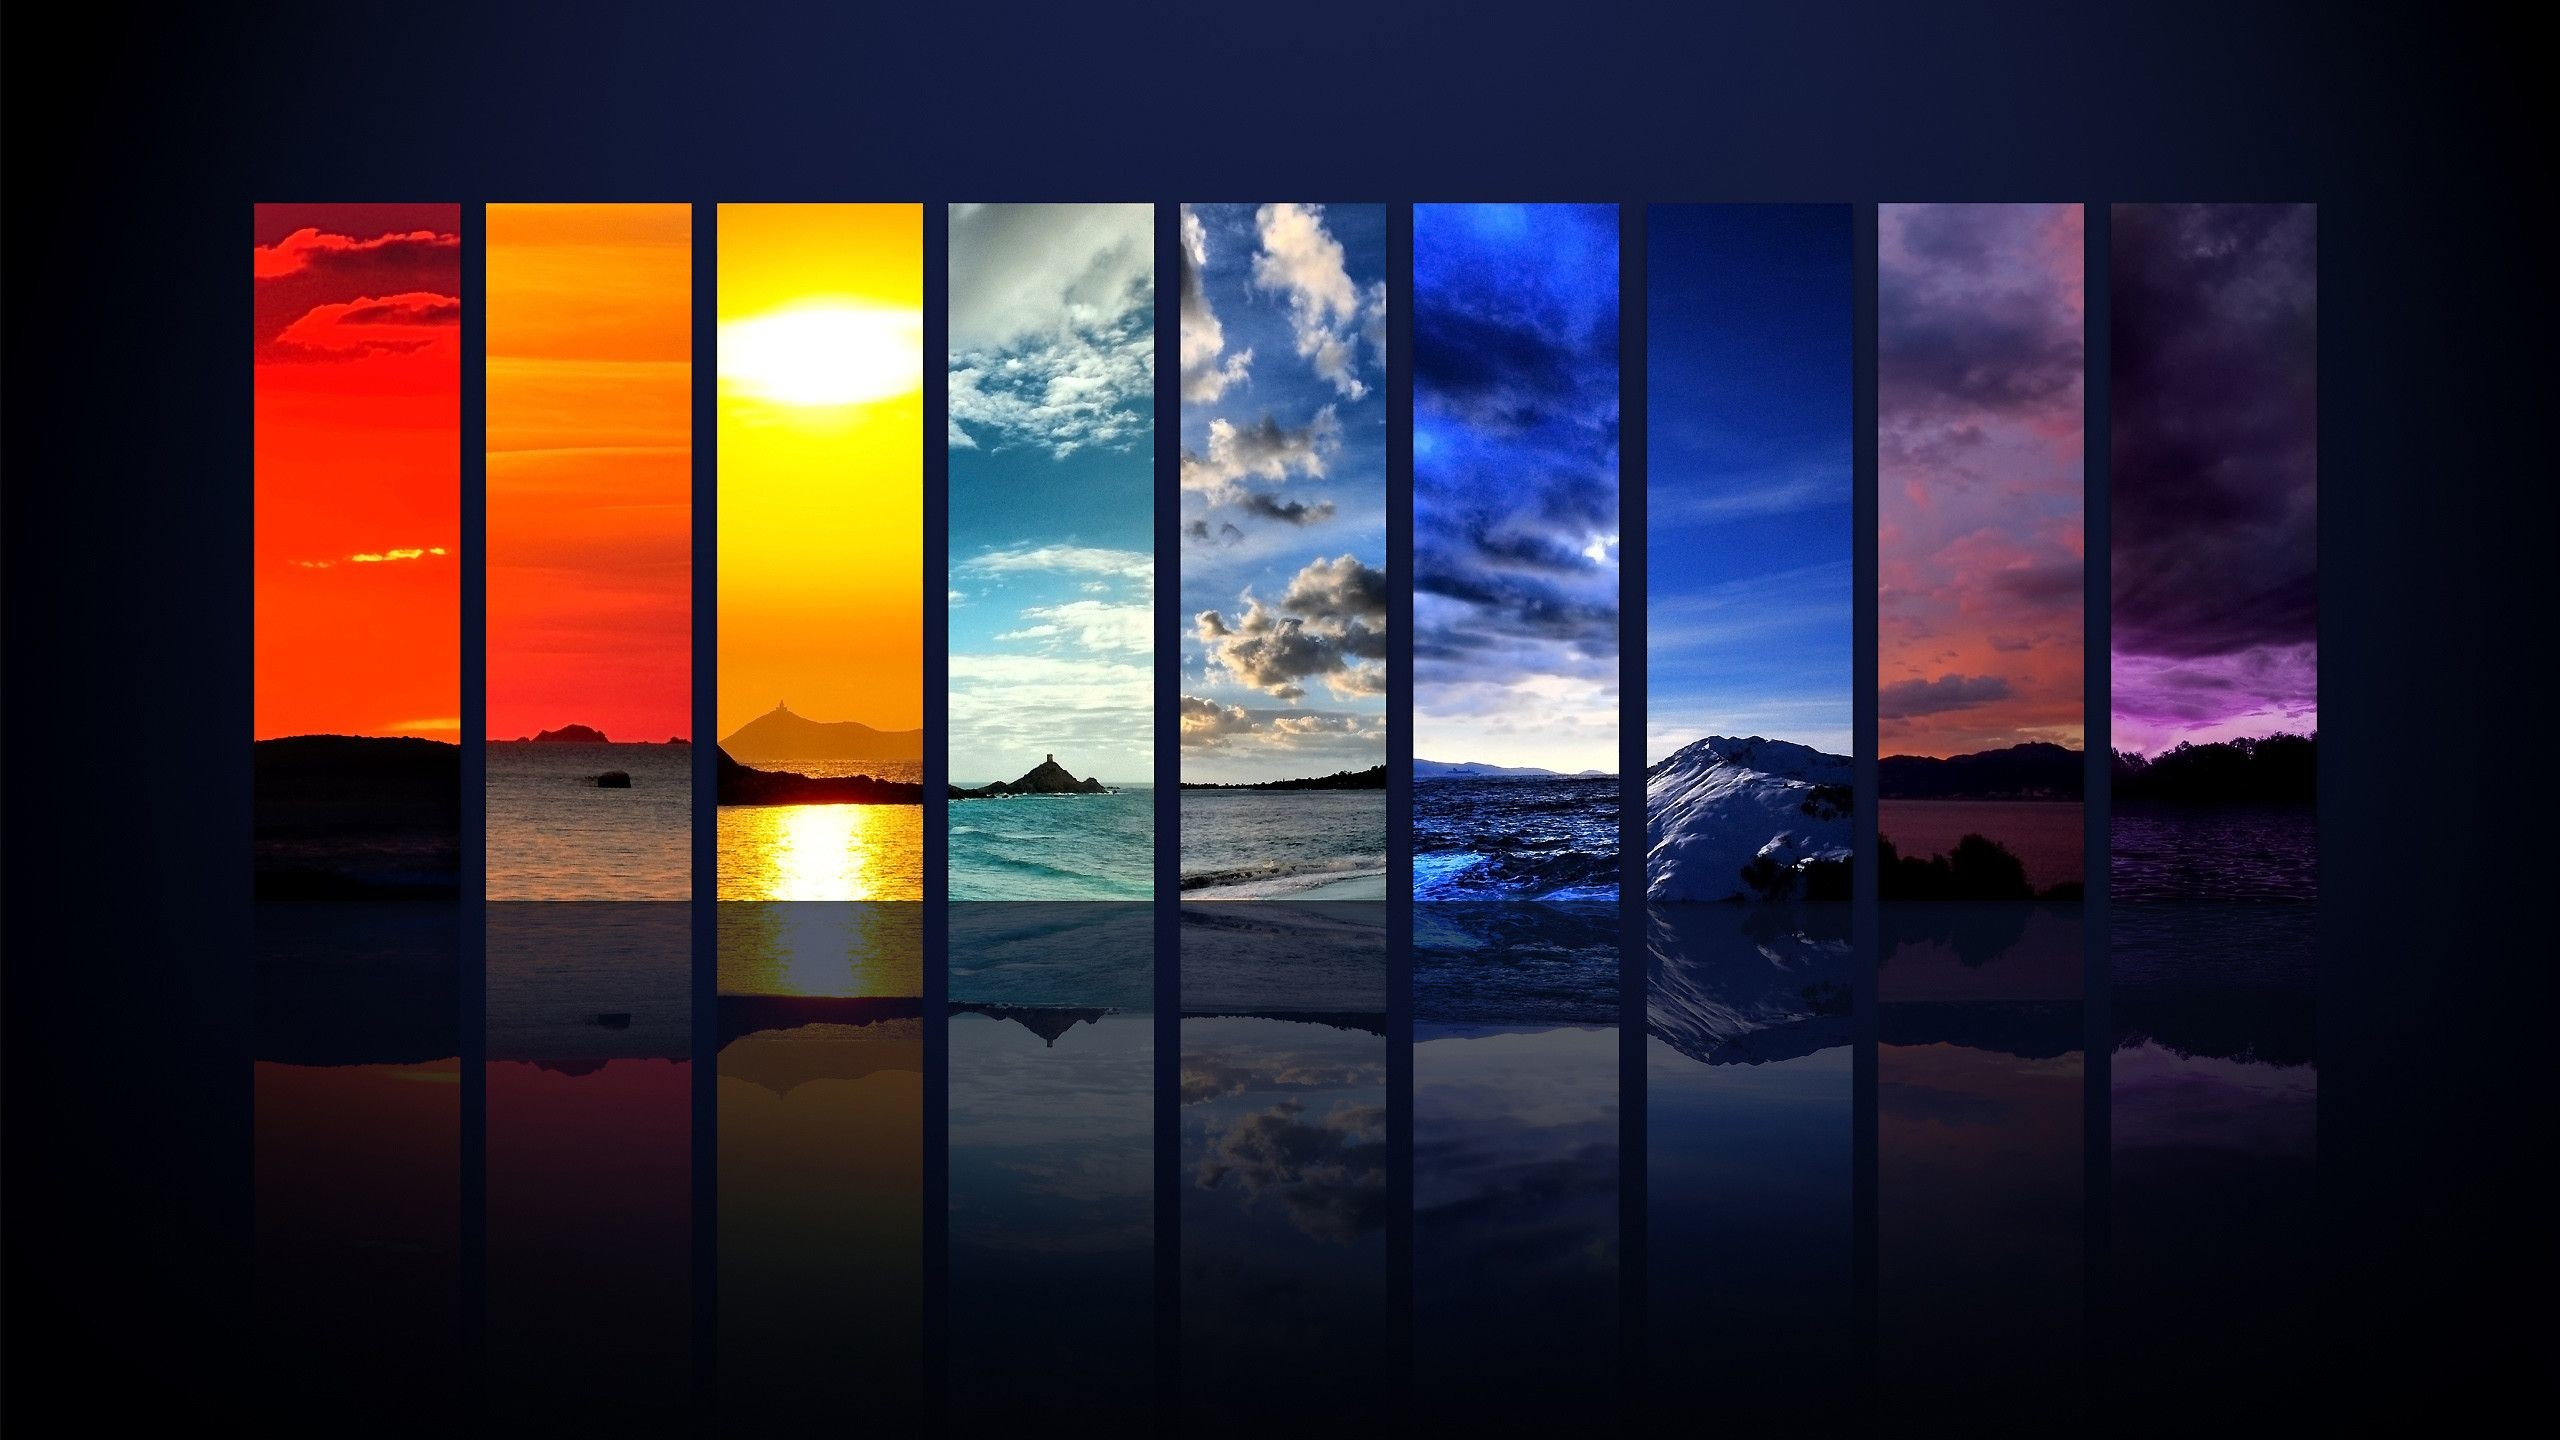 IMac HD Wallpaper 68 Images